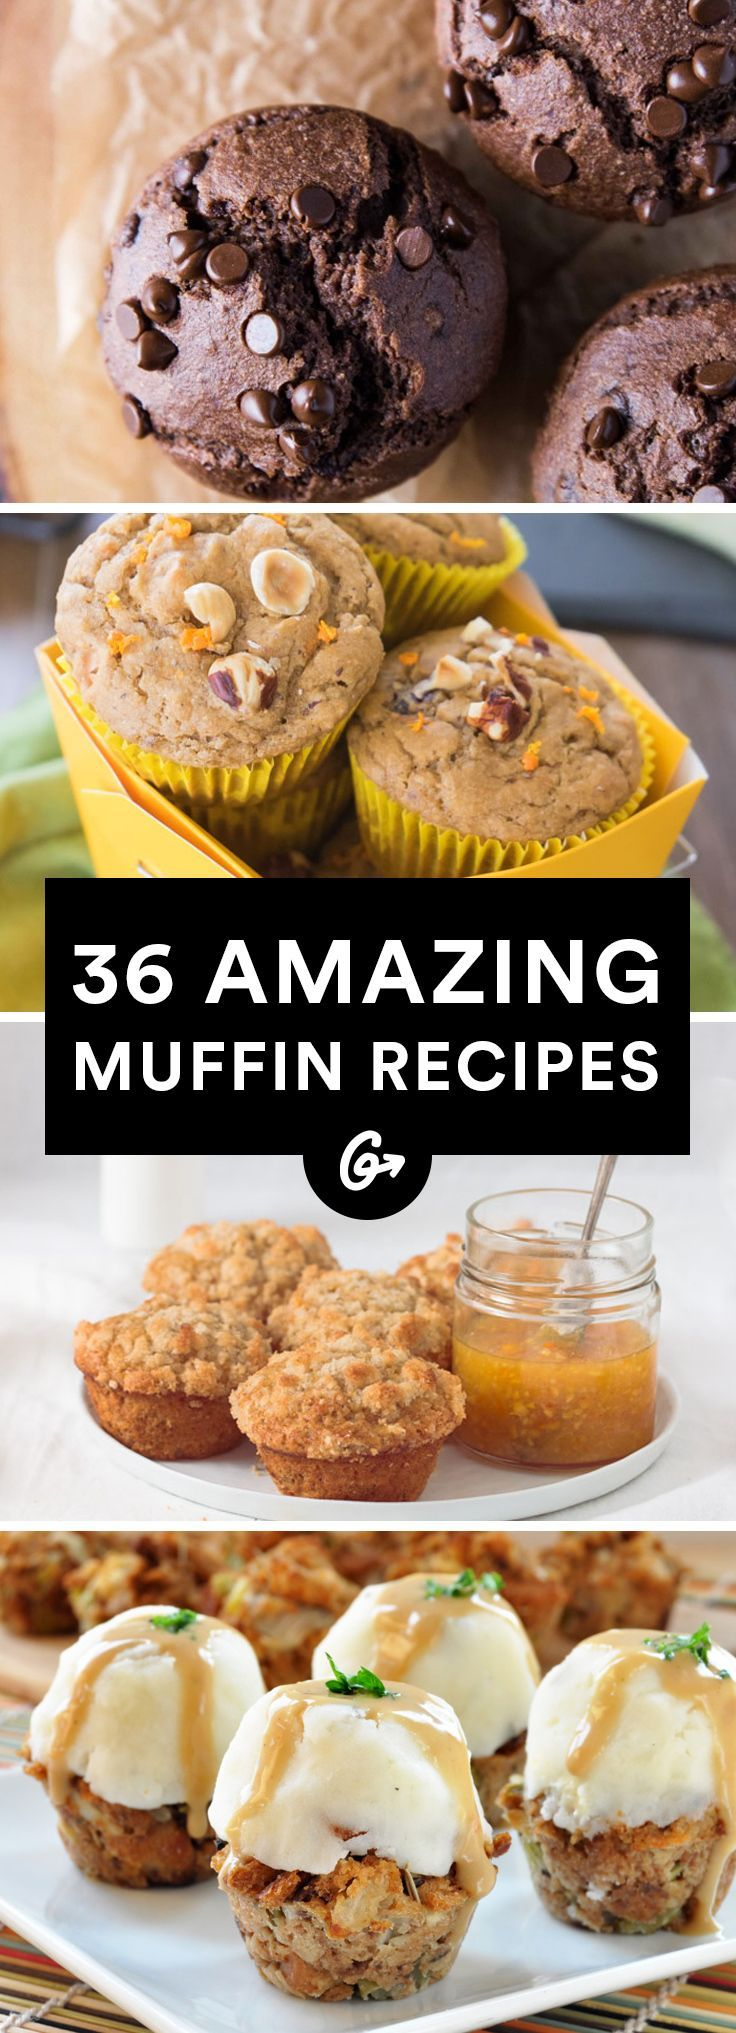 Easy healthy recipes for muffins